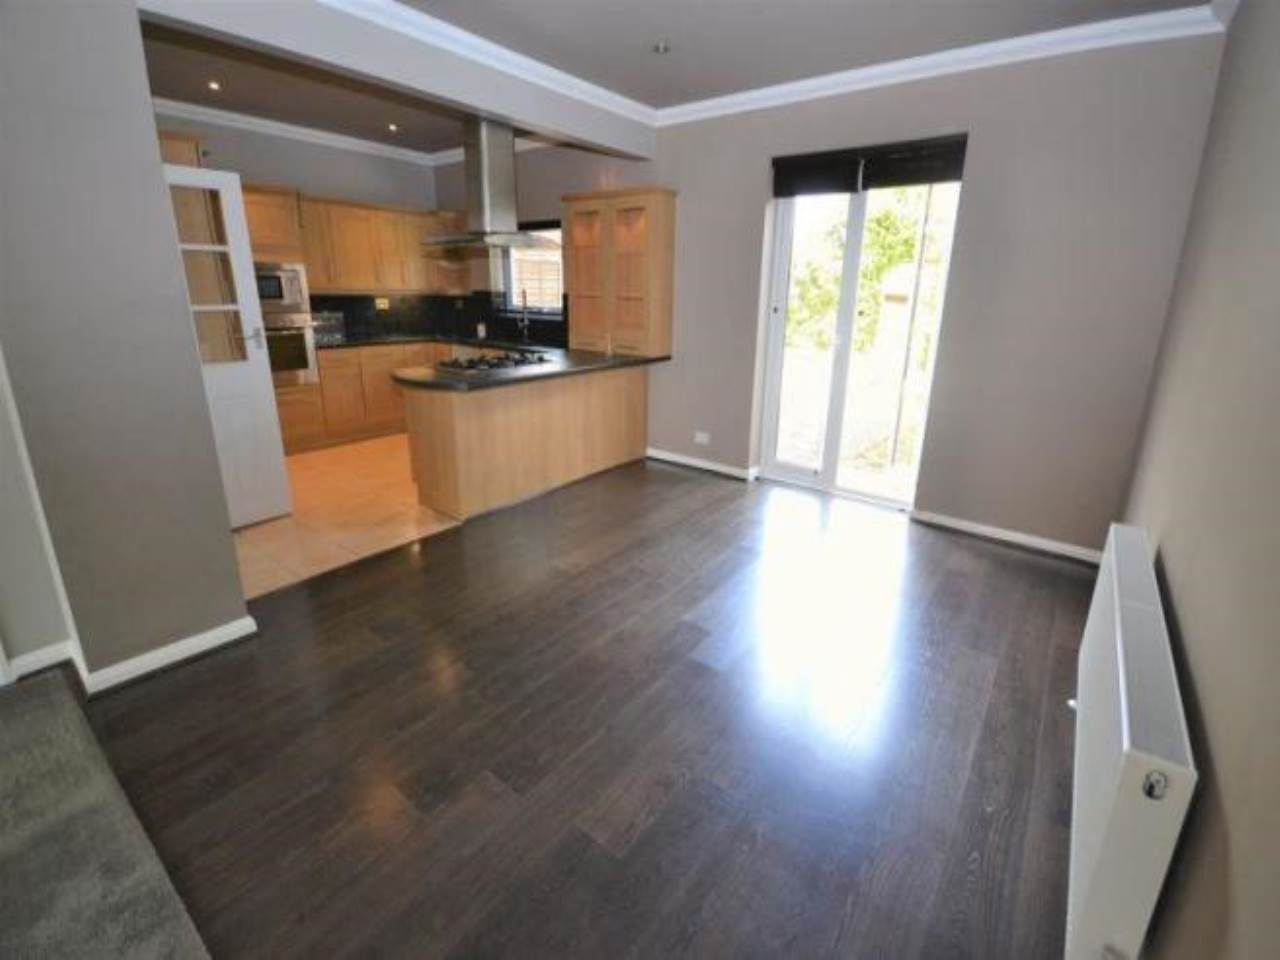 4 bed house for sale in Cowper Road, Moordown  - Property Image 5